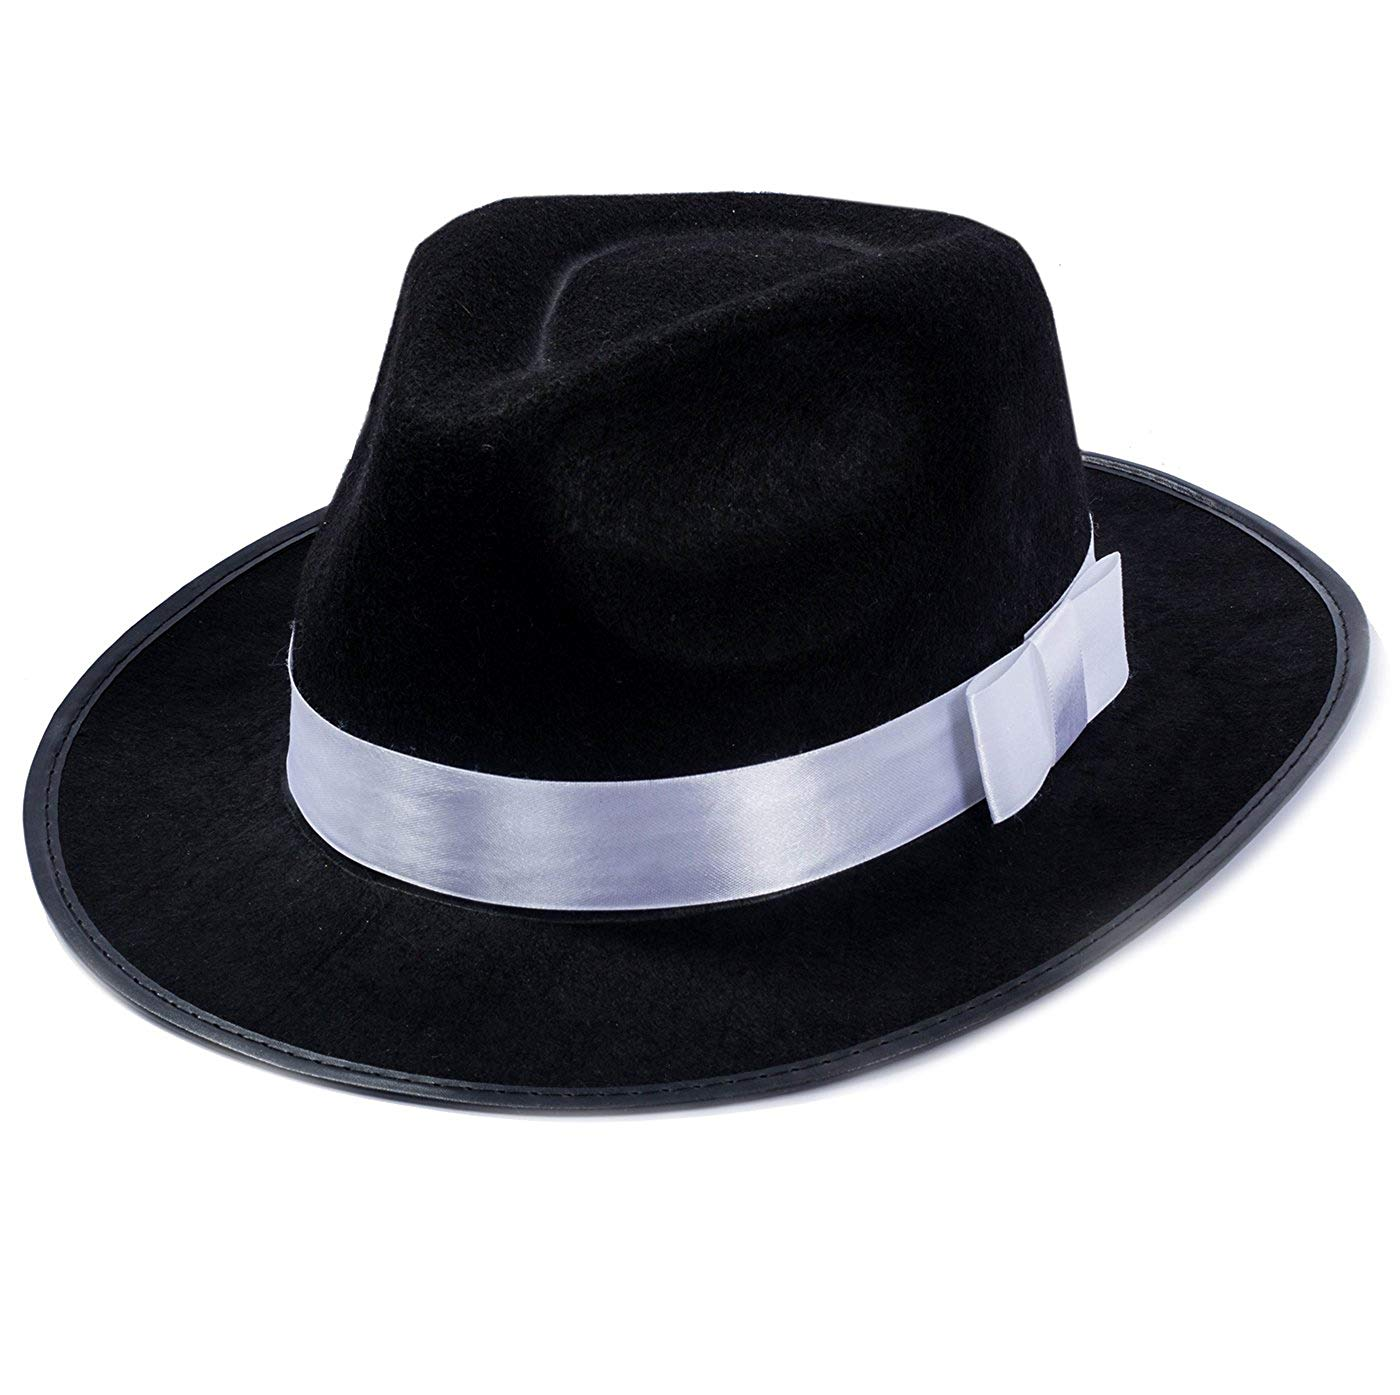 Get Quotations · Funny Party Hats Black Fedora Gangster Hat Costume  Accessory a248e76146d3